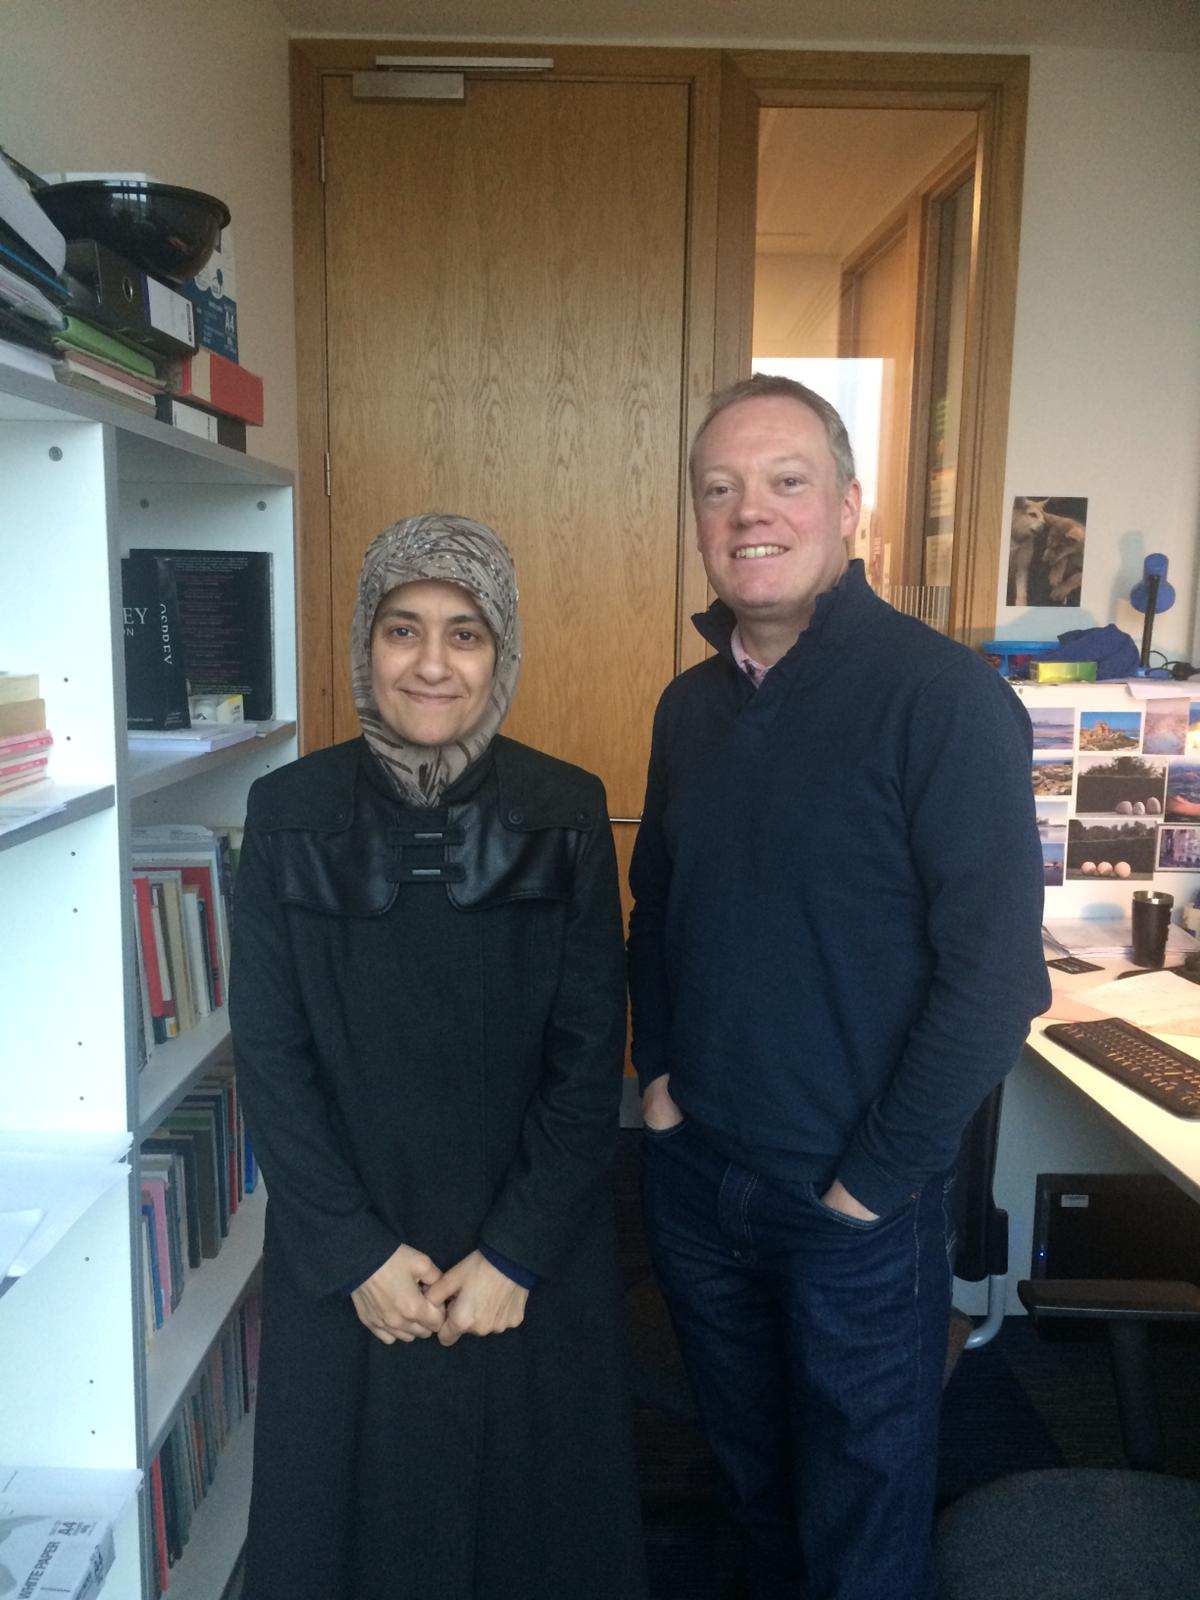 Dr Sawsan Hassan with her PhD supervisor, Prof. Dan McIntyre